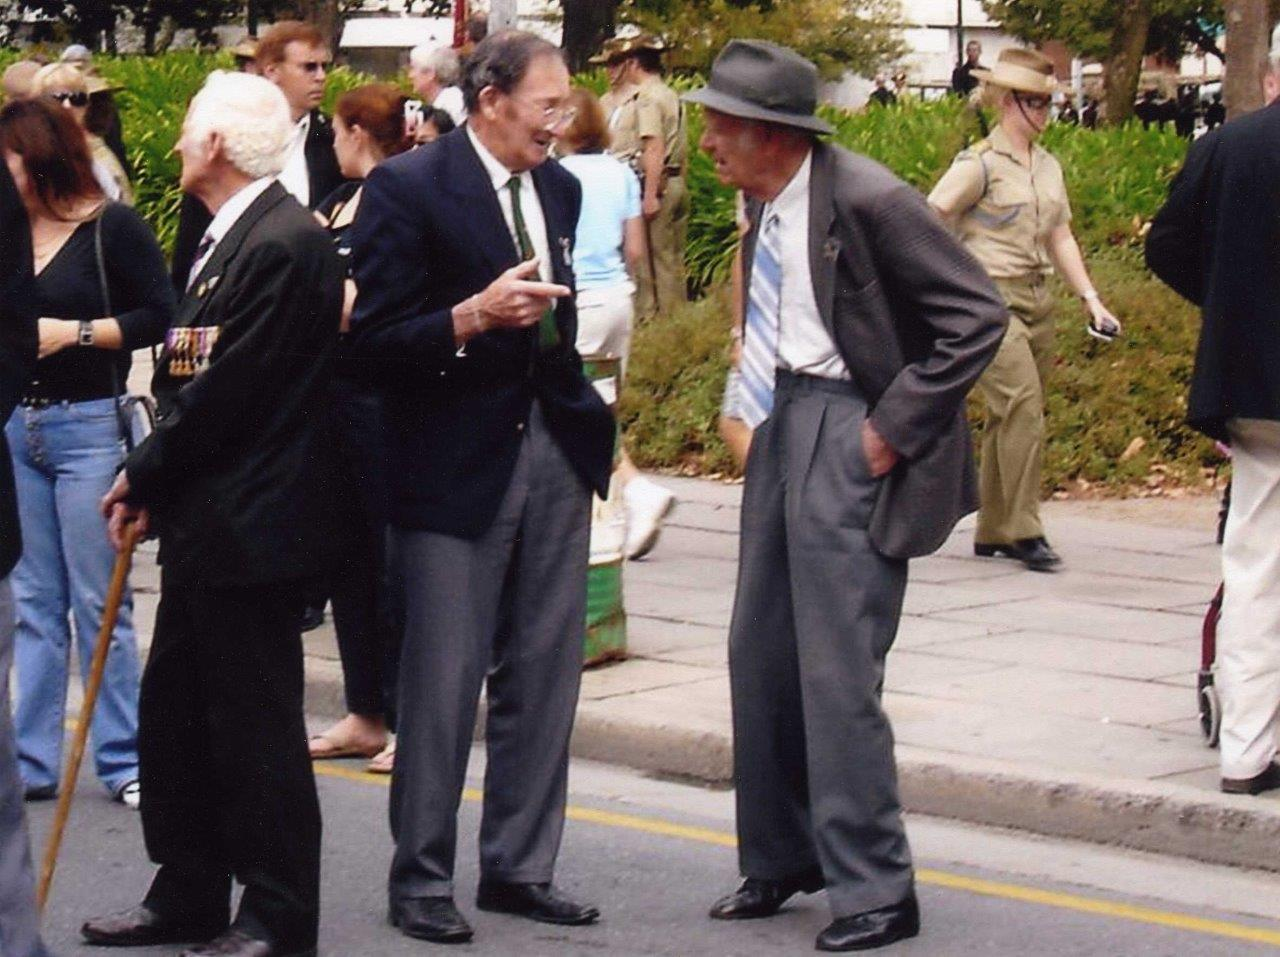 ANZAC Day 2005, Adelaide. Pictured are from left, Norman Lloyd FIEBIG (SX12795, corporal, 2/43rd Battalion), Lenard George BROWN (SX31918, Private with the 2/43rd Battalion) and Maurice La Rue PREST (SX9160, Lance corporal with the 2/43rd Battalion). From the collection of the late Len BROWN.